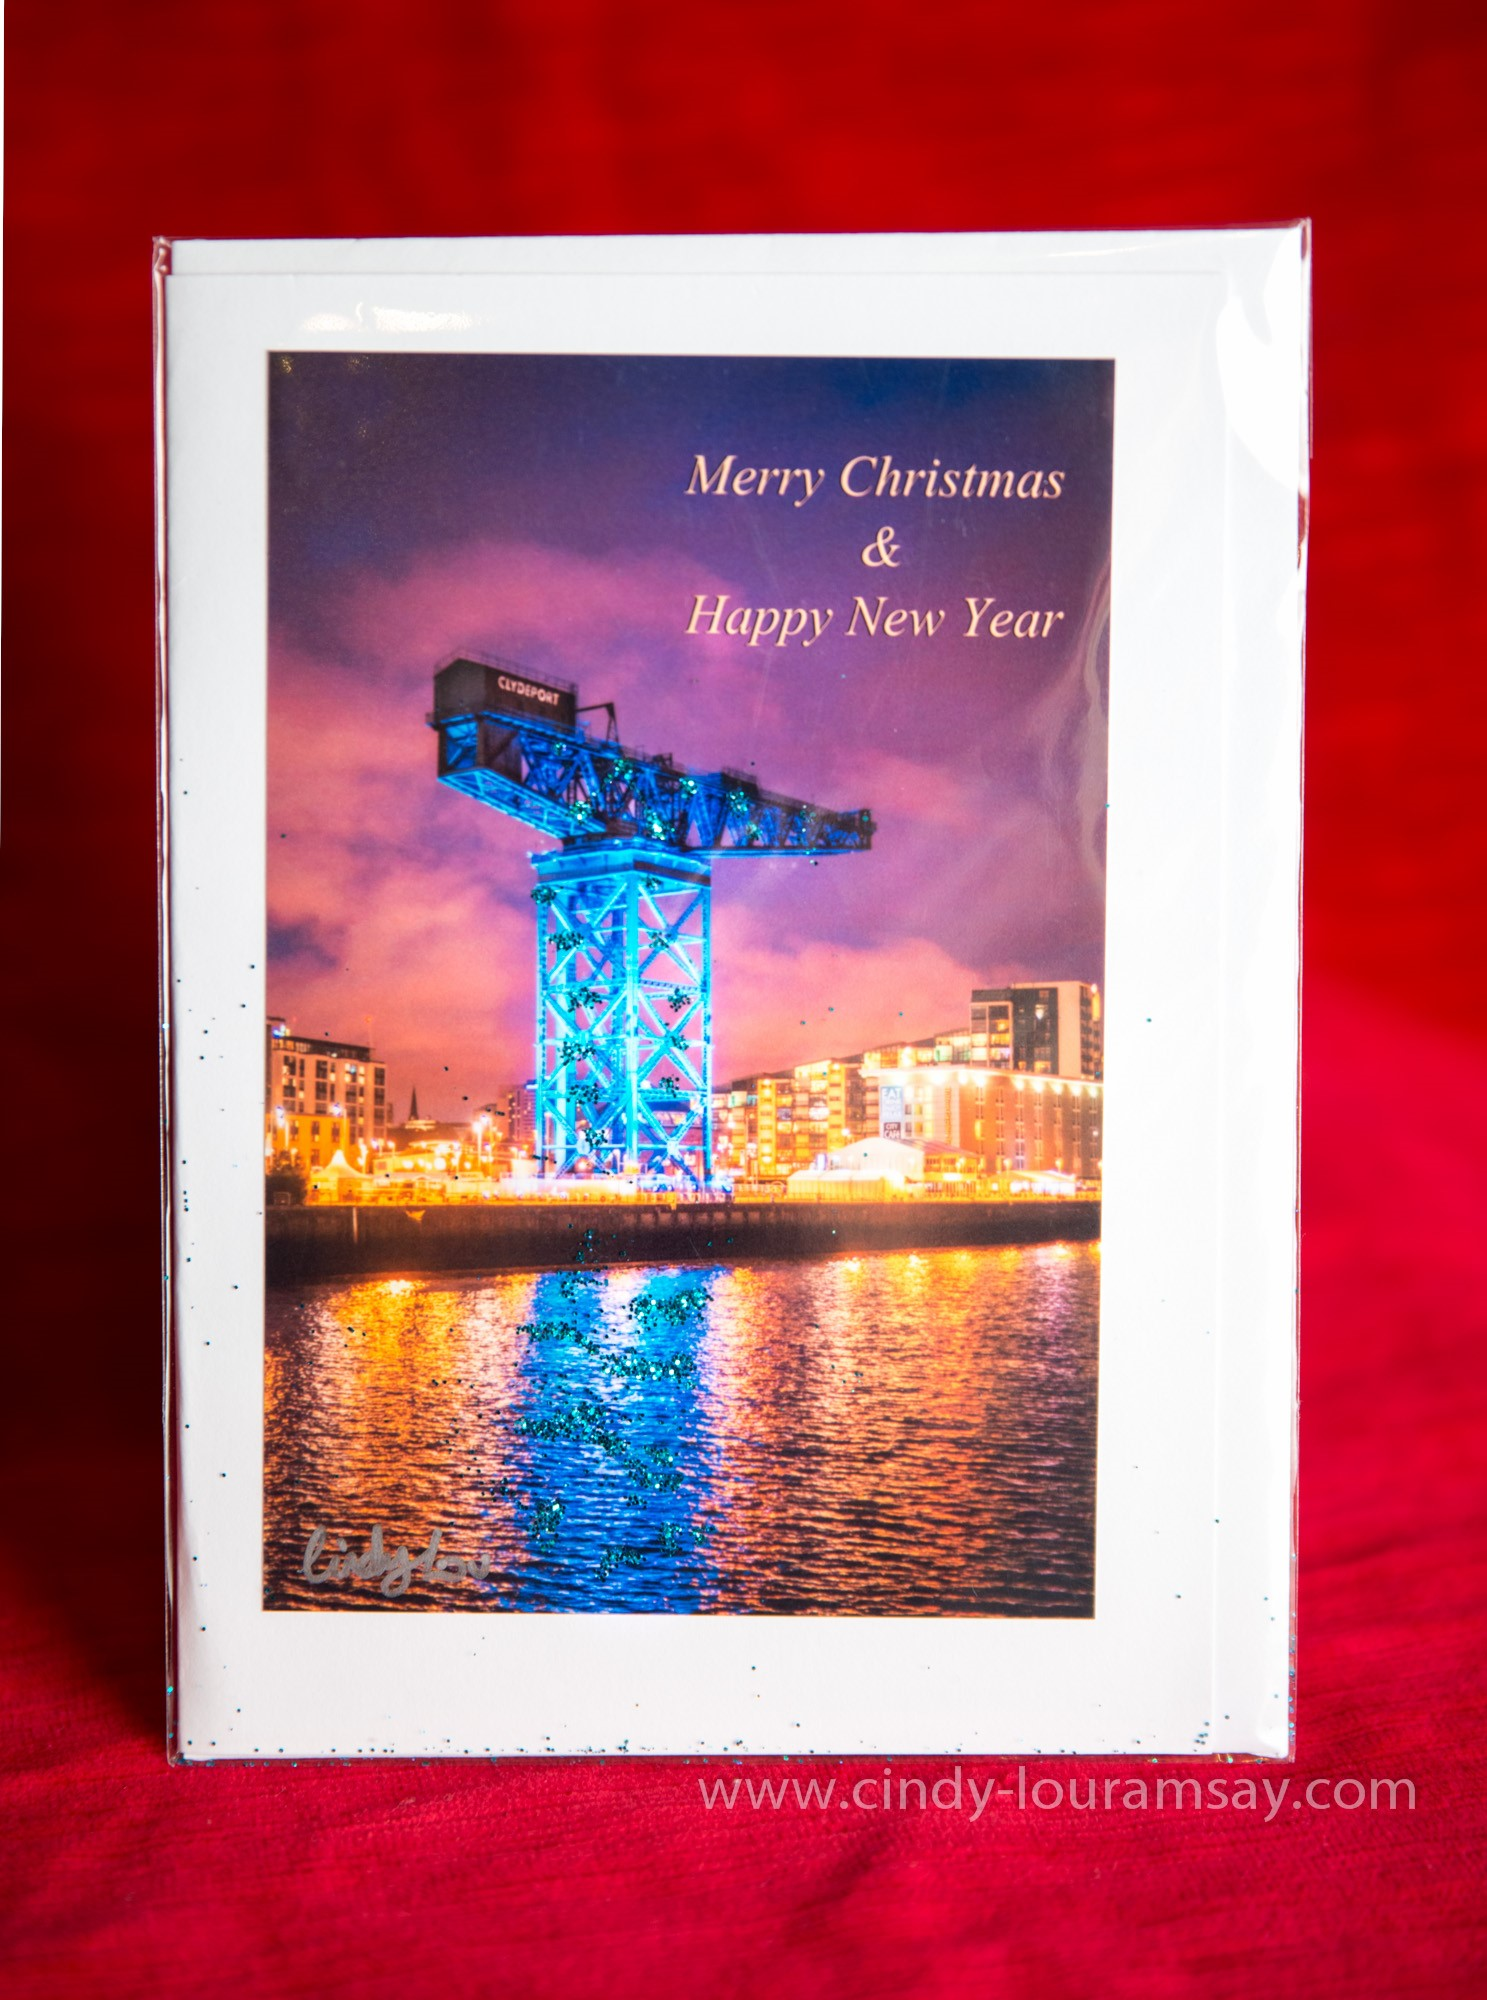 Glasgow Christmas Card by Cindy Lou Ramsay Finnieston Crane